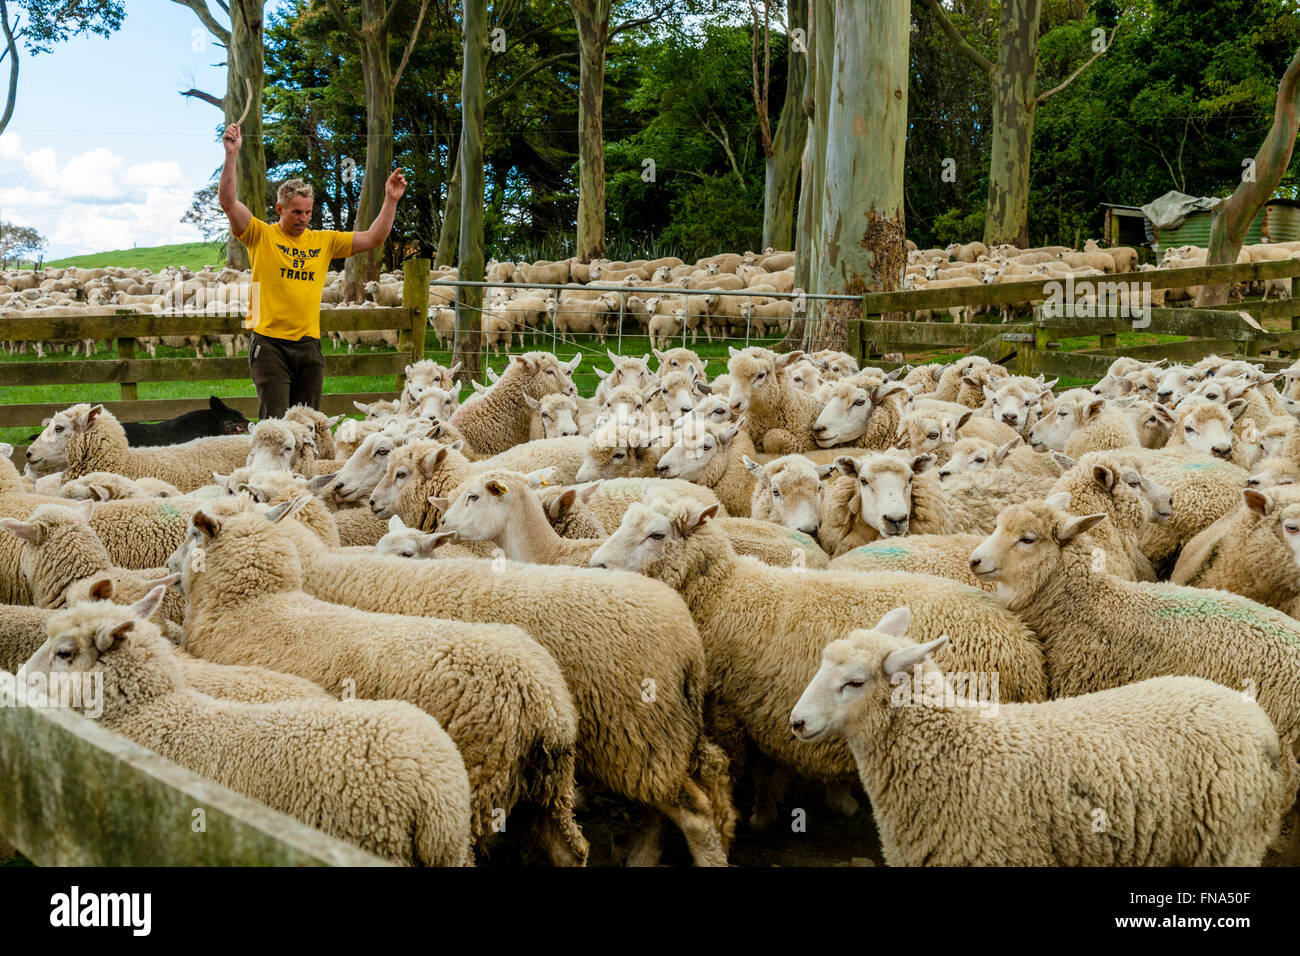 Sheep Are Moved Into A Sheep Pen In Readiness To Be Sold, Sheep Farm, Pukekohe, New Zealand - Stock Image